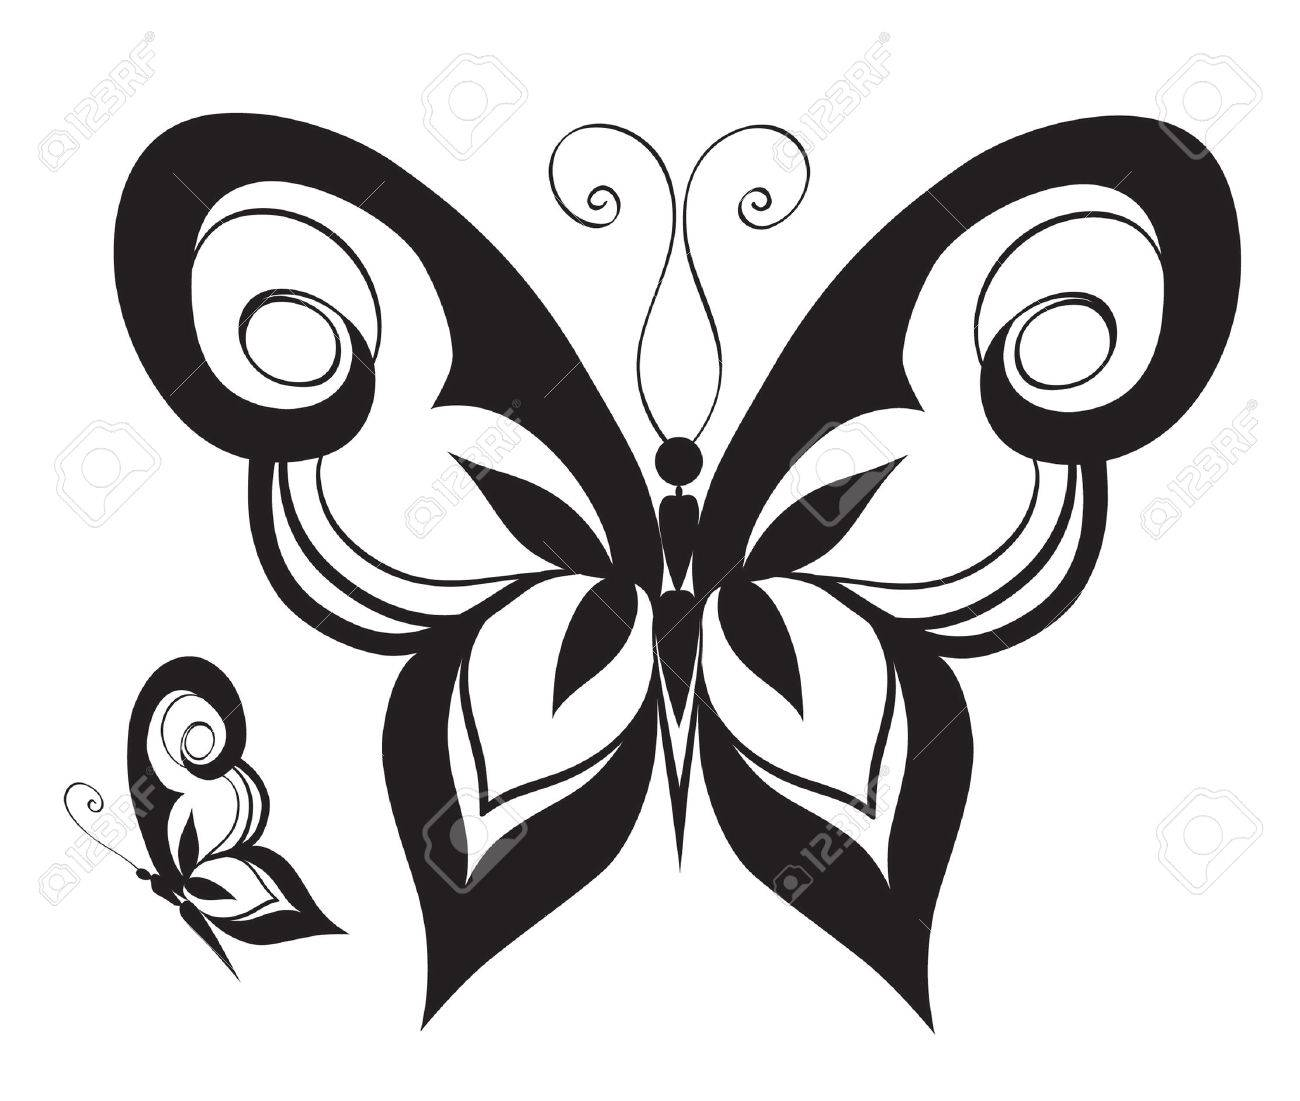 Abstract Silhouette Invented Decorative Butterfly Reminiscent